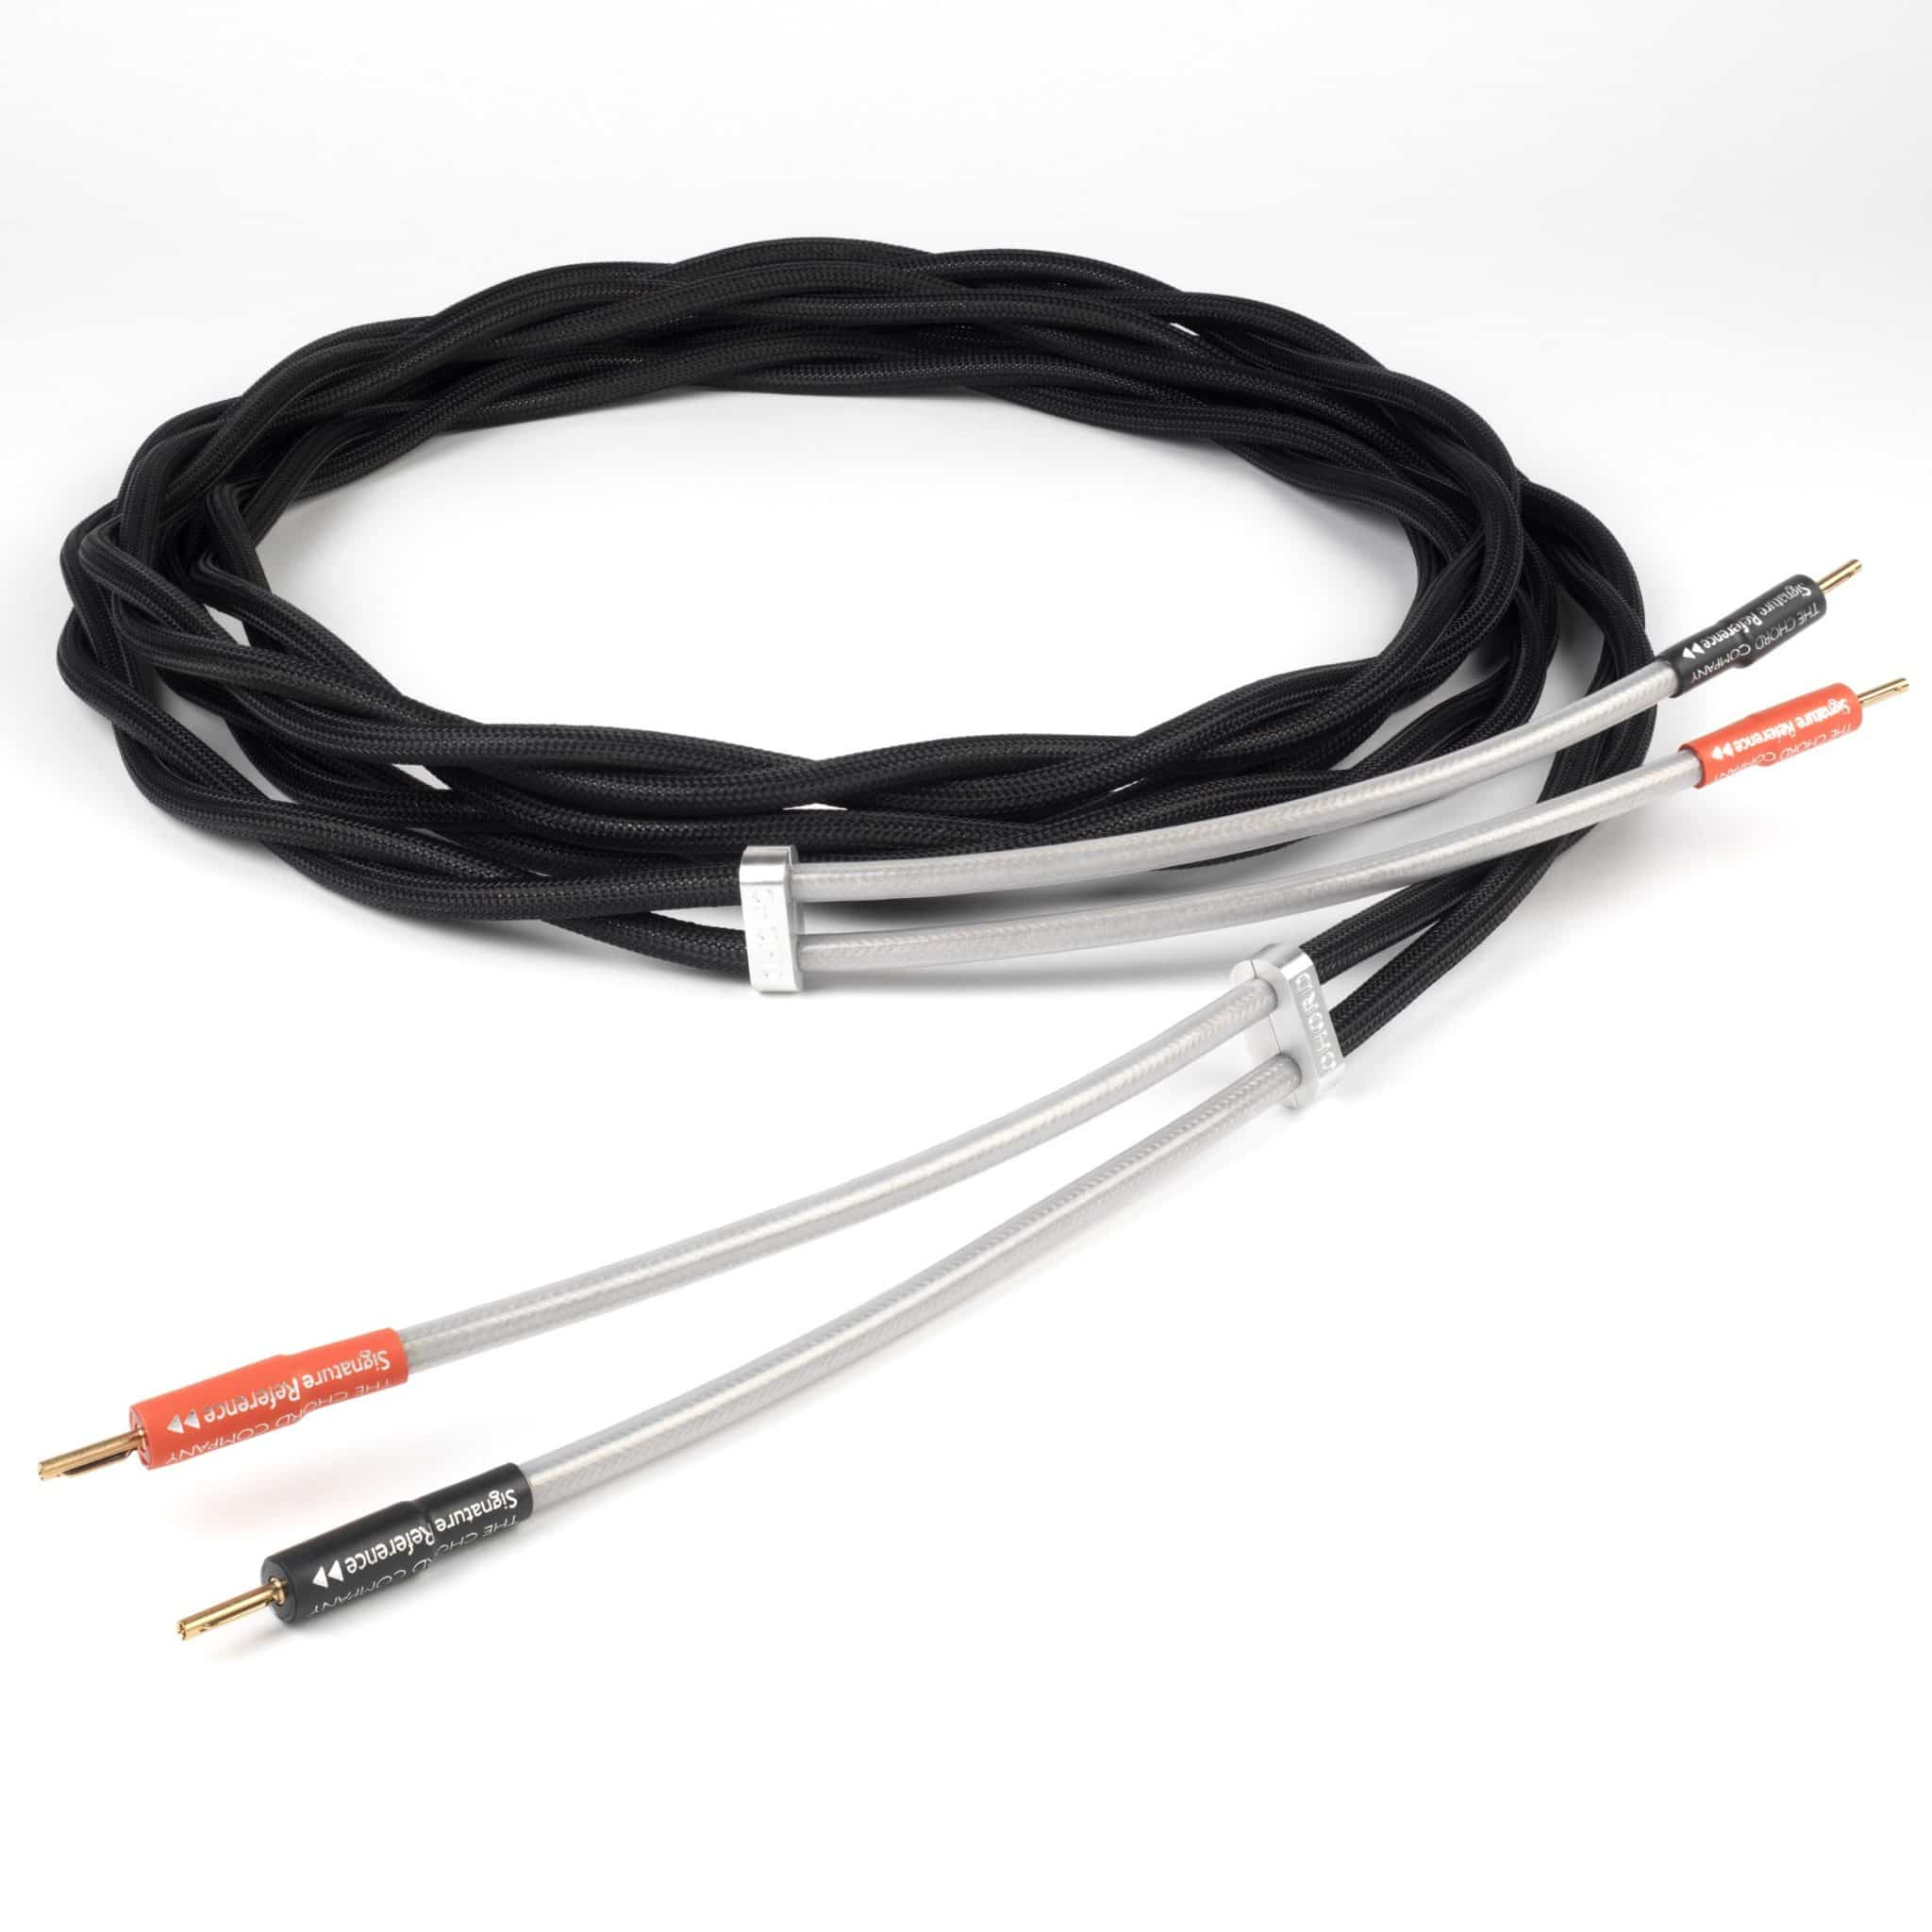 Signature Reference Speaker Cables From Chord